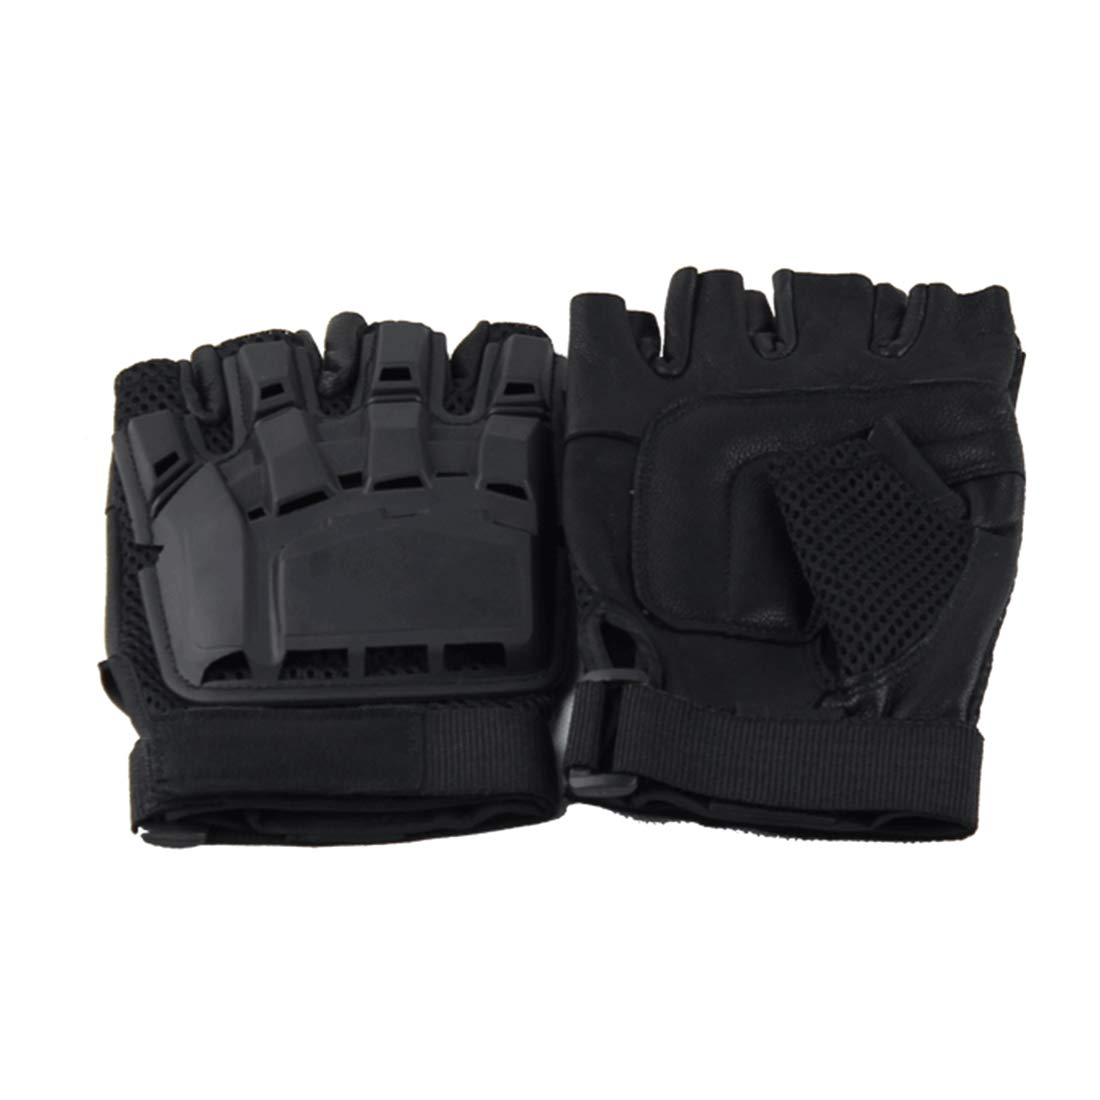 Carriemeow Outdoor Tactical Half Finger Gloves Cycling Sports Mountaineering Protective Half Finger Gloves